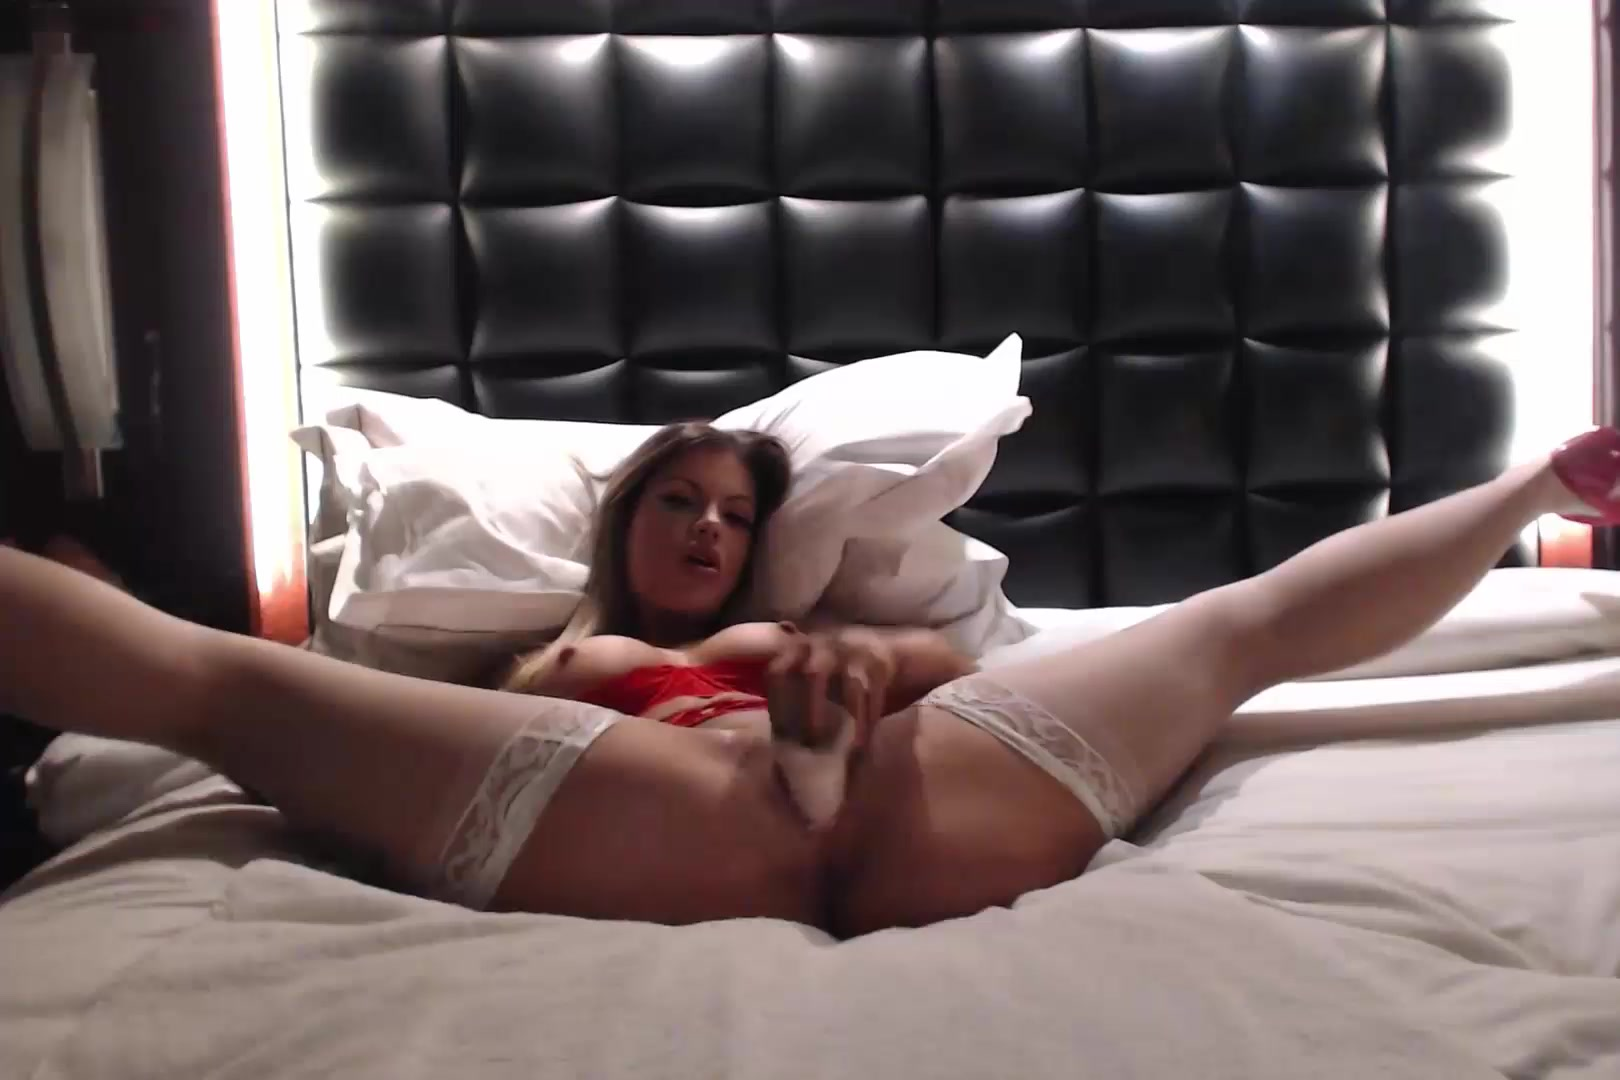 Hot blonde Harley LaVey filling her pussy with dildo on bed